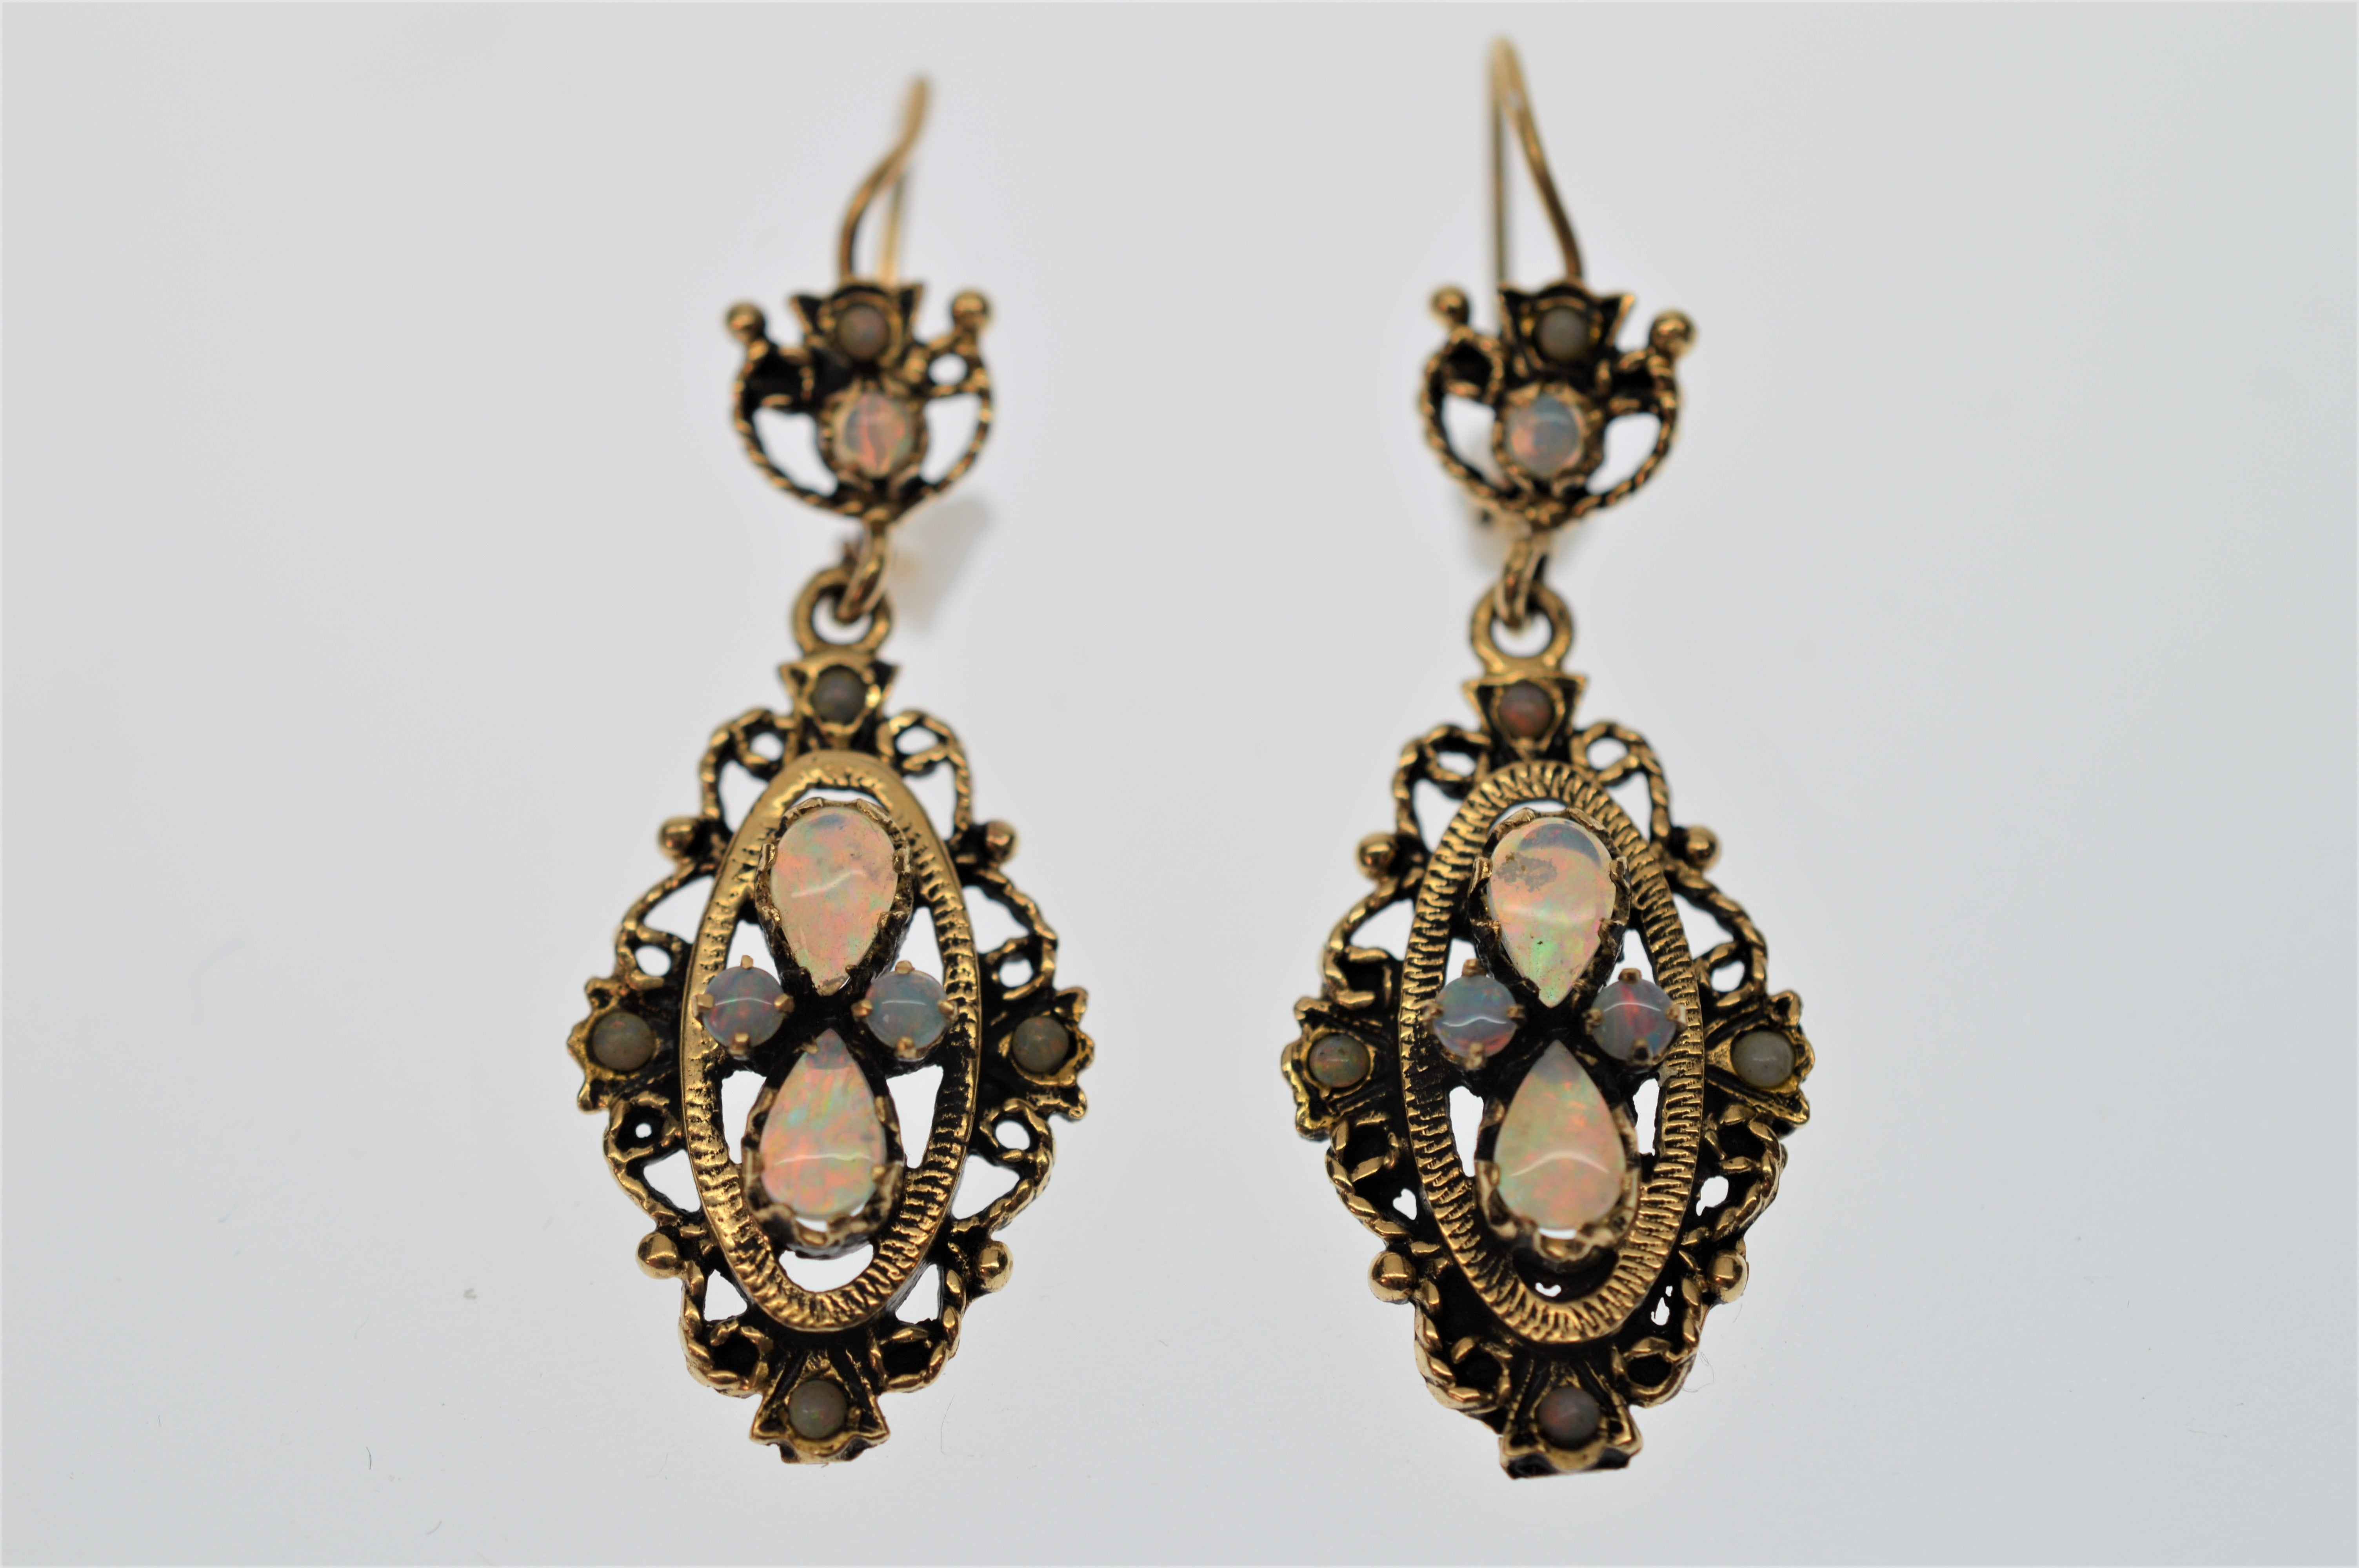 d9e9b86574a 14K Yellow Gold and Genuine Opal Brooch Pin Pendant and Matching Dangle  Earrings at 1stdibs